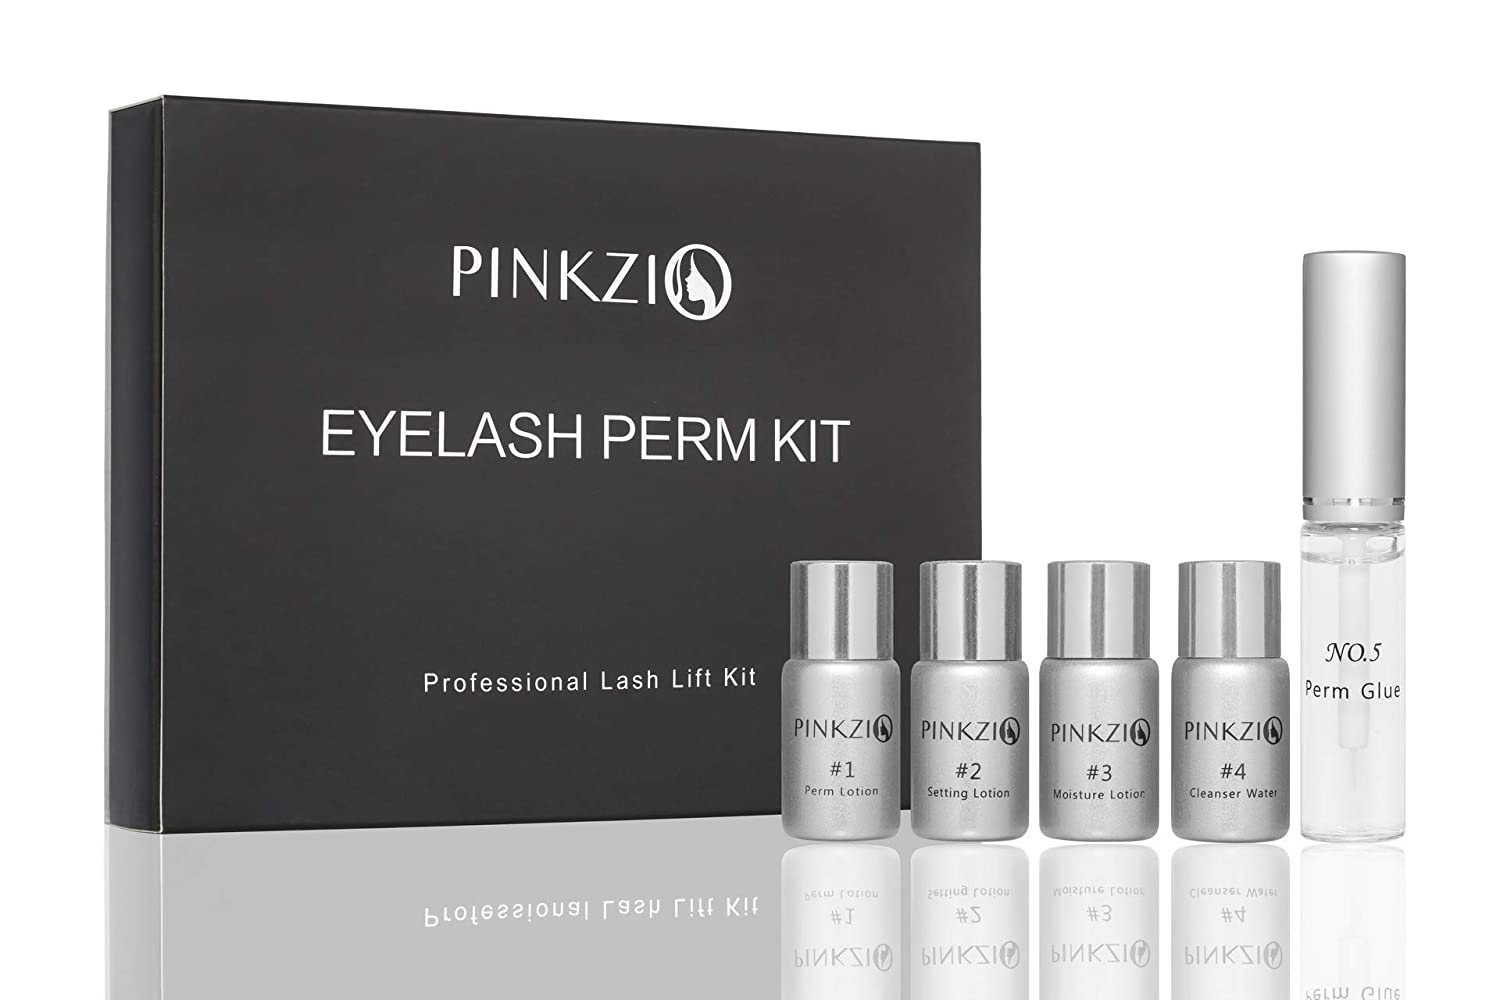 7ad7c100278 Amazon.com : Pinkzio Eyelash Perm Kit Full lash Lift Kit For Professional  Use, Salon Lash lift Eyelash Perming kit (PK68) : Beauty